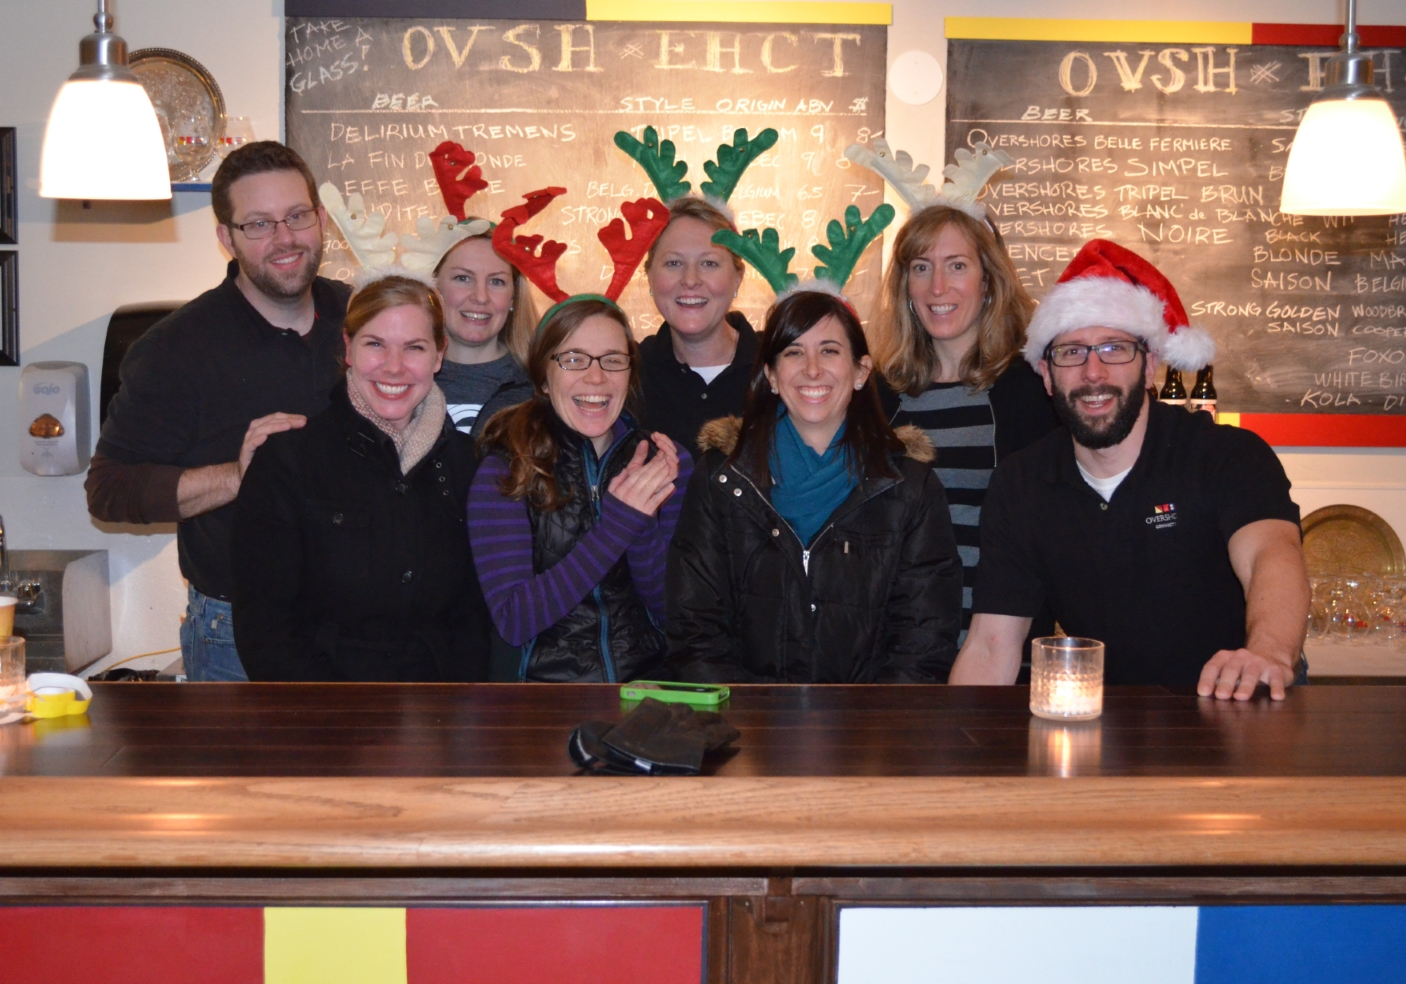 December 12, 2015: Overshores Brewing Co. to Host Holiday Bash